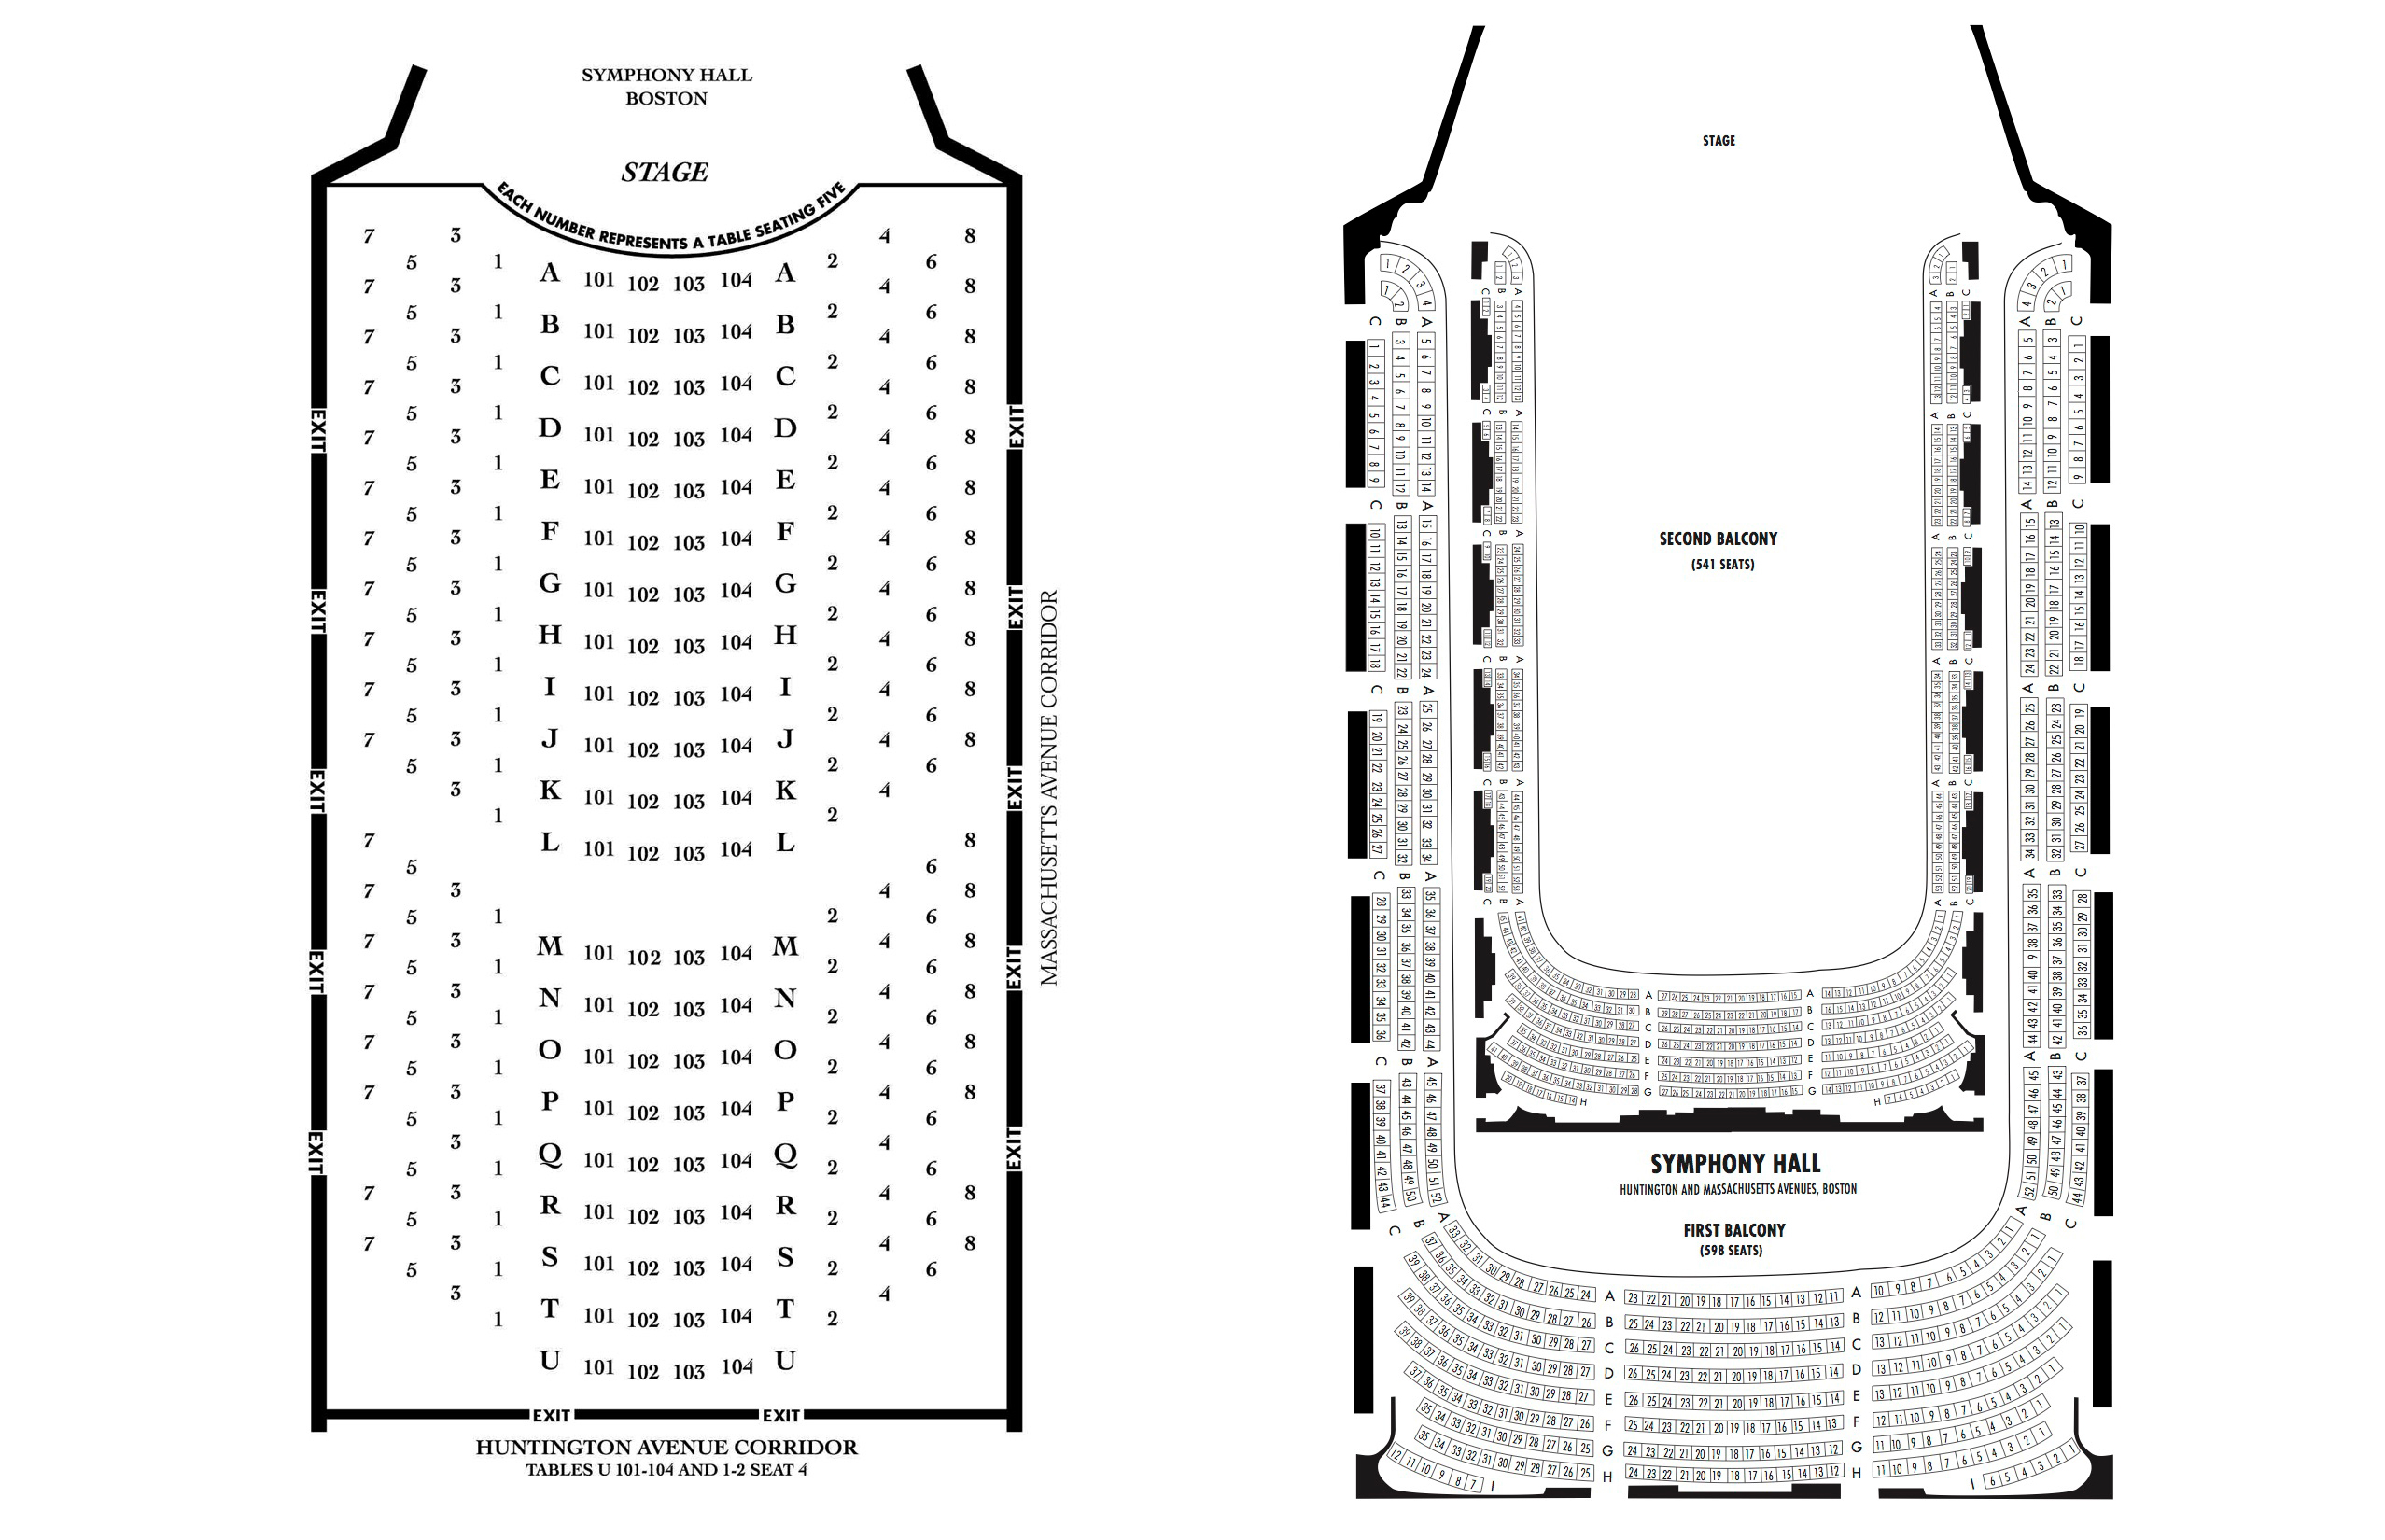 Boston symphony hall boston tickets schedule seating charts